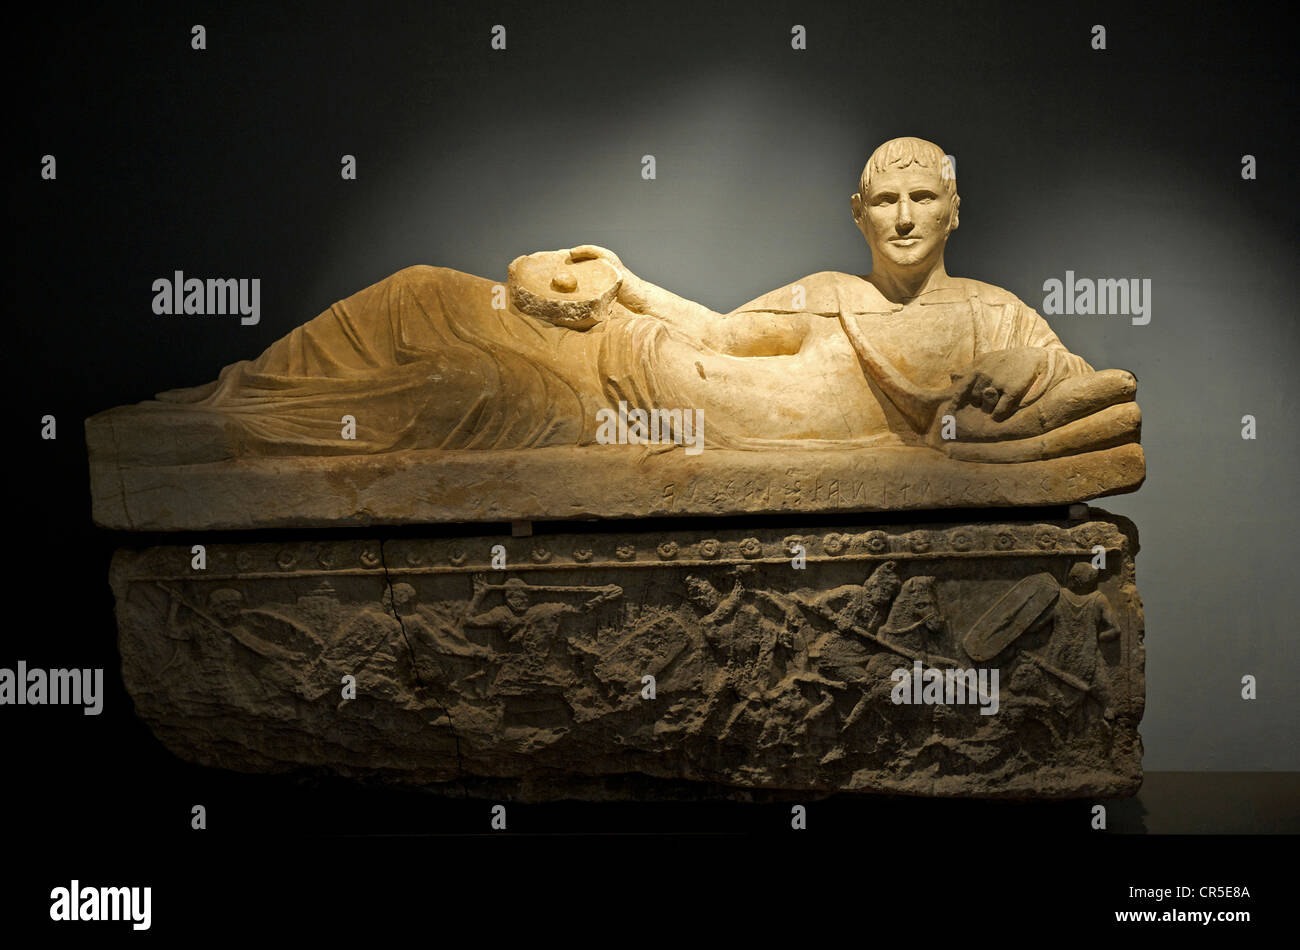 Italy, Tuscany, Chiusi, Museo Archeologico Nazionale (National Museum of Archeology), 3th century AD alabaster sarcophagus - Stock Image